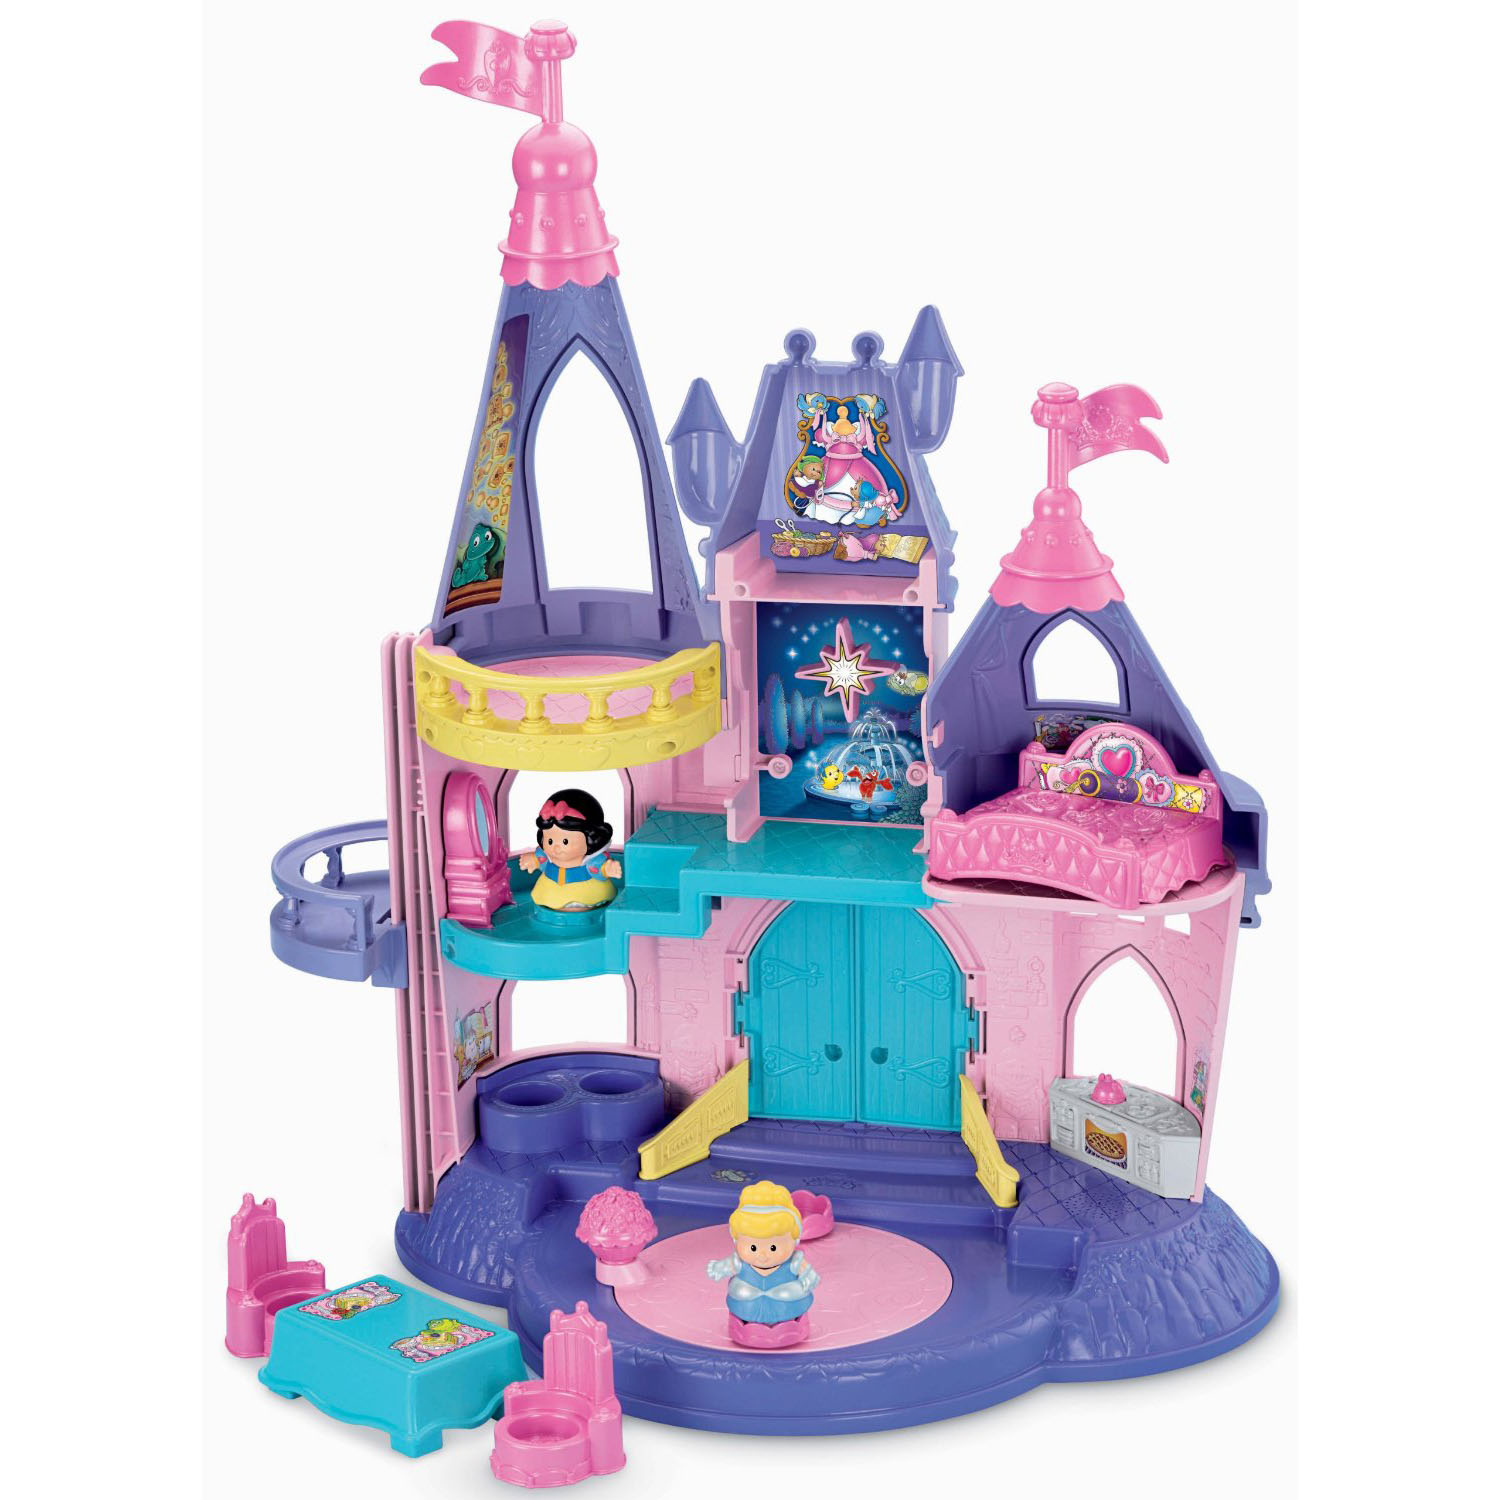 Disney Princess Toys   LITTLE PEOPLE DISNEY PRINCESS SONGS PALACE at yD9UF6kK